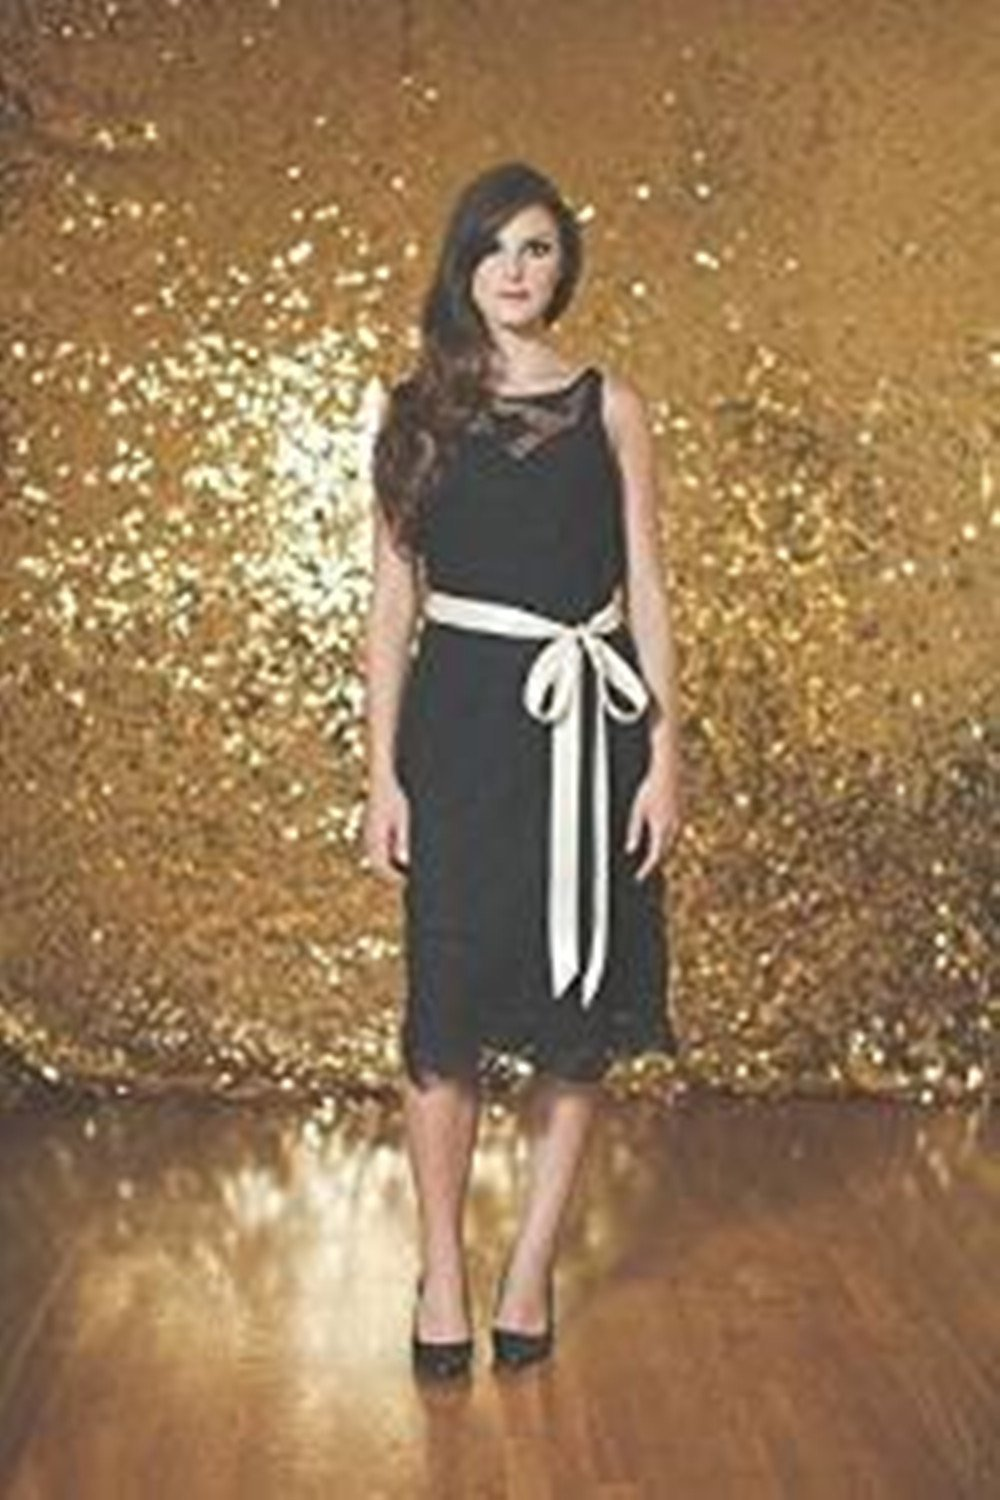 TRLYC 10ft10ft Gold Sequin backdrops, Sequin photo booth backdrop, Party backdrops, Wedding backdrops, sparkling backdrops, Christmas decoration